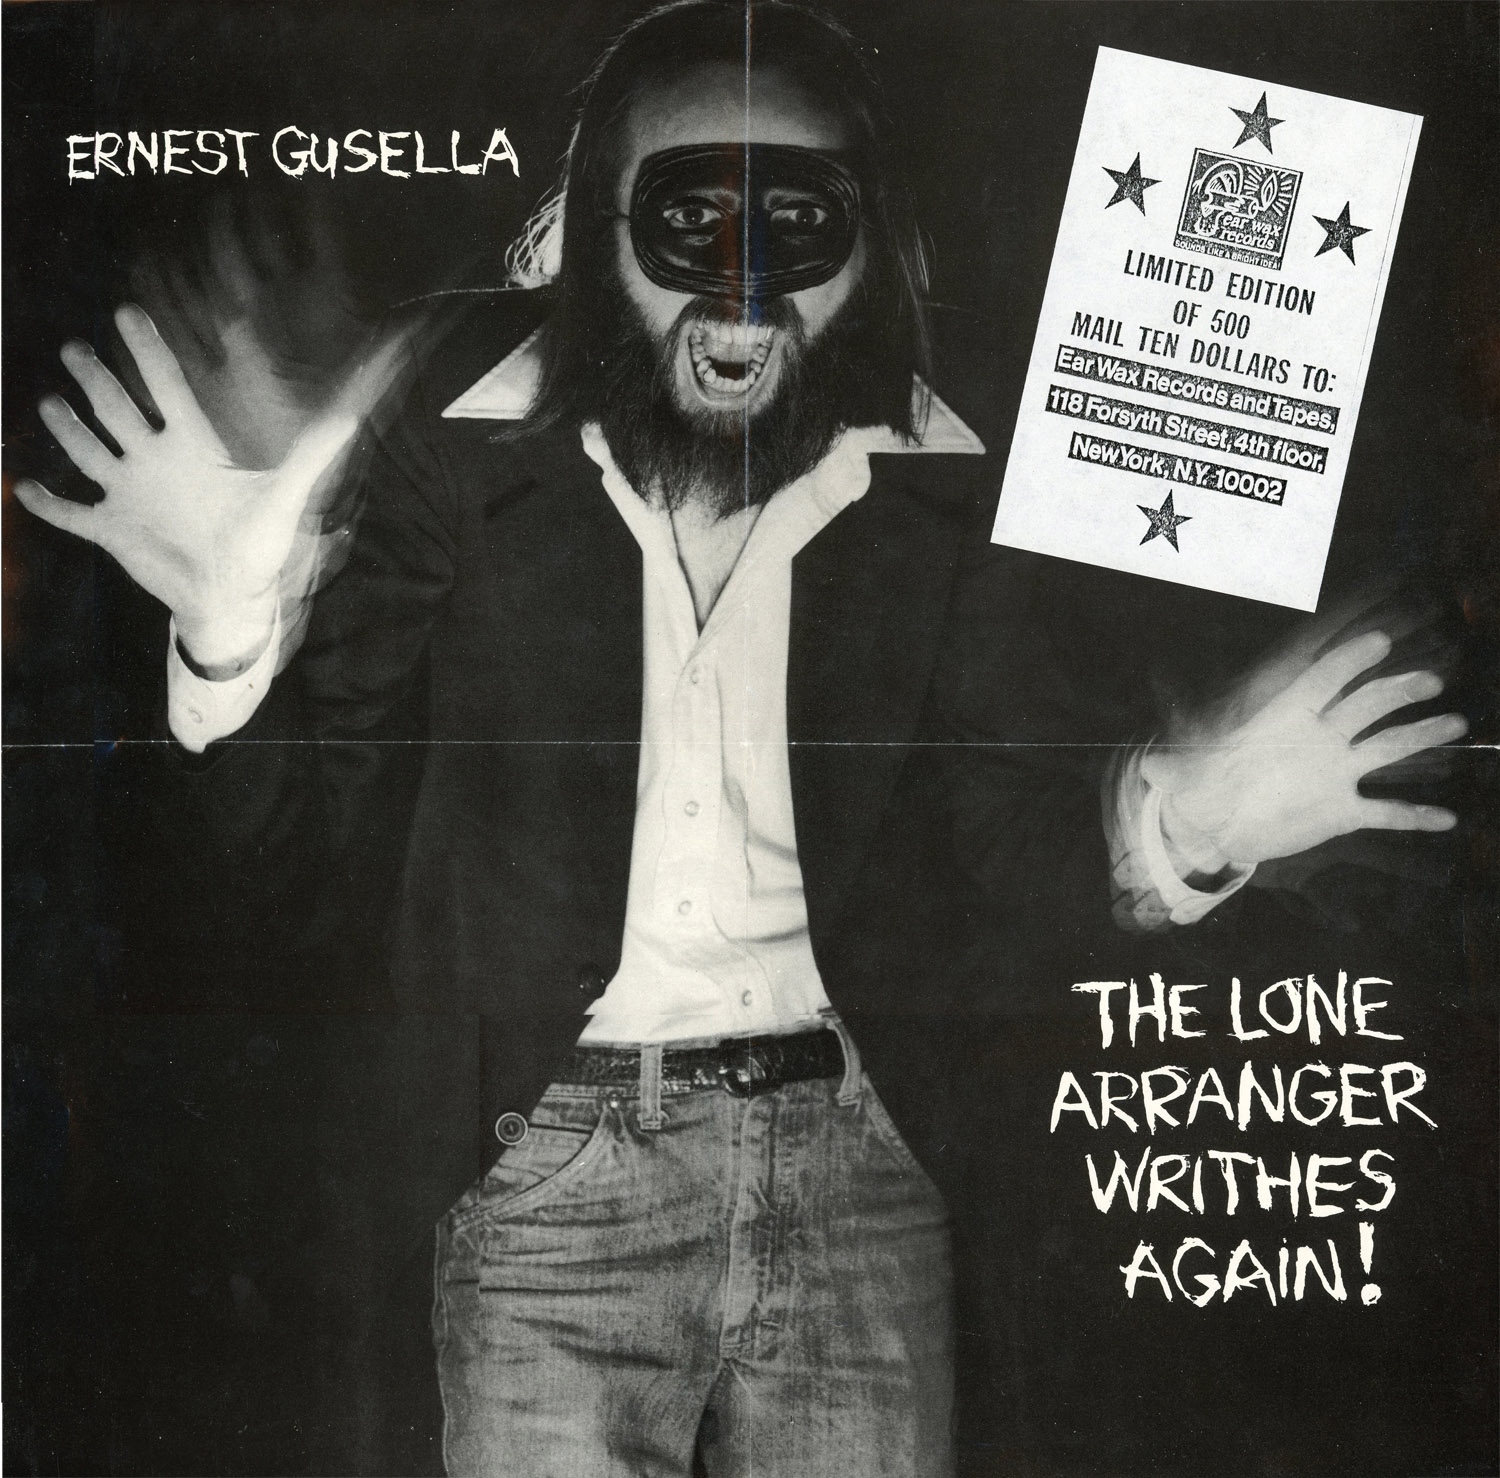 Ernest Gusella, The Lone Arranger Writhes Again!, Poster.